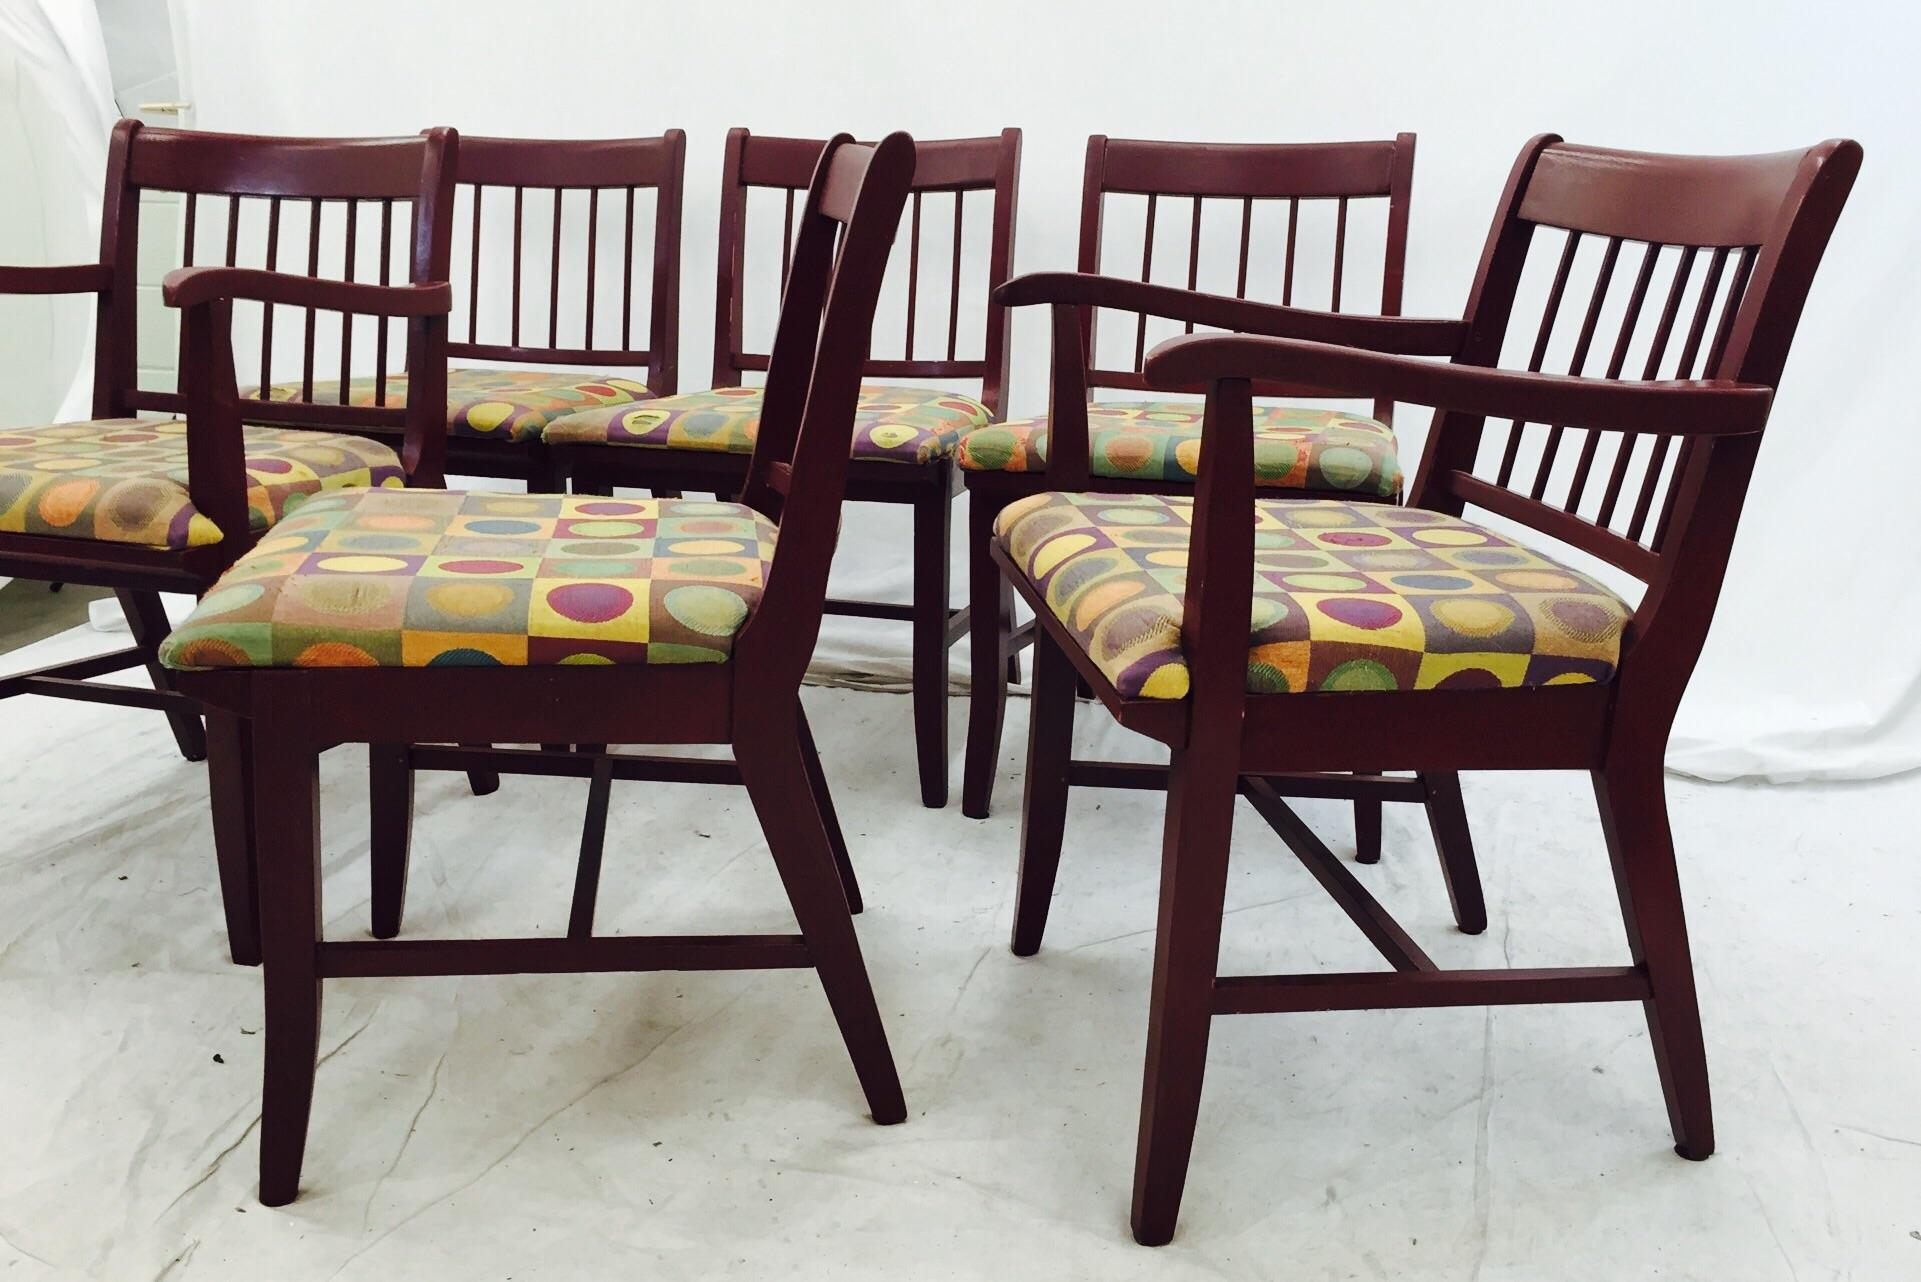 Vintage Mid Century Drexel Dining Table amp 6 Chairs Chairish : 624e2d63 5350 4c6d b8e3 a7d928575a27aspectfitampwidth640ampheight640 from www.chairish.com size 640 x 640 jpeg 51kB